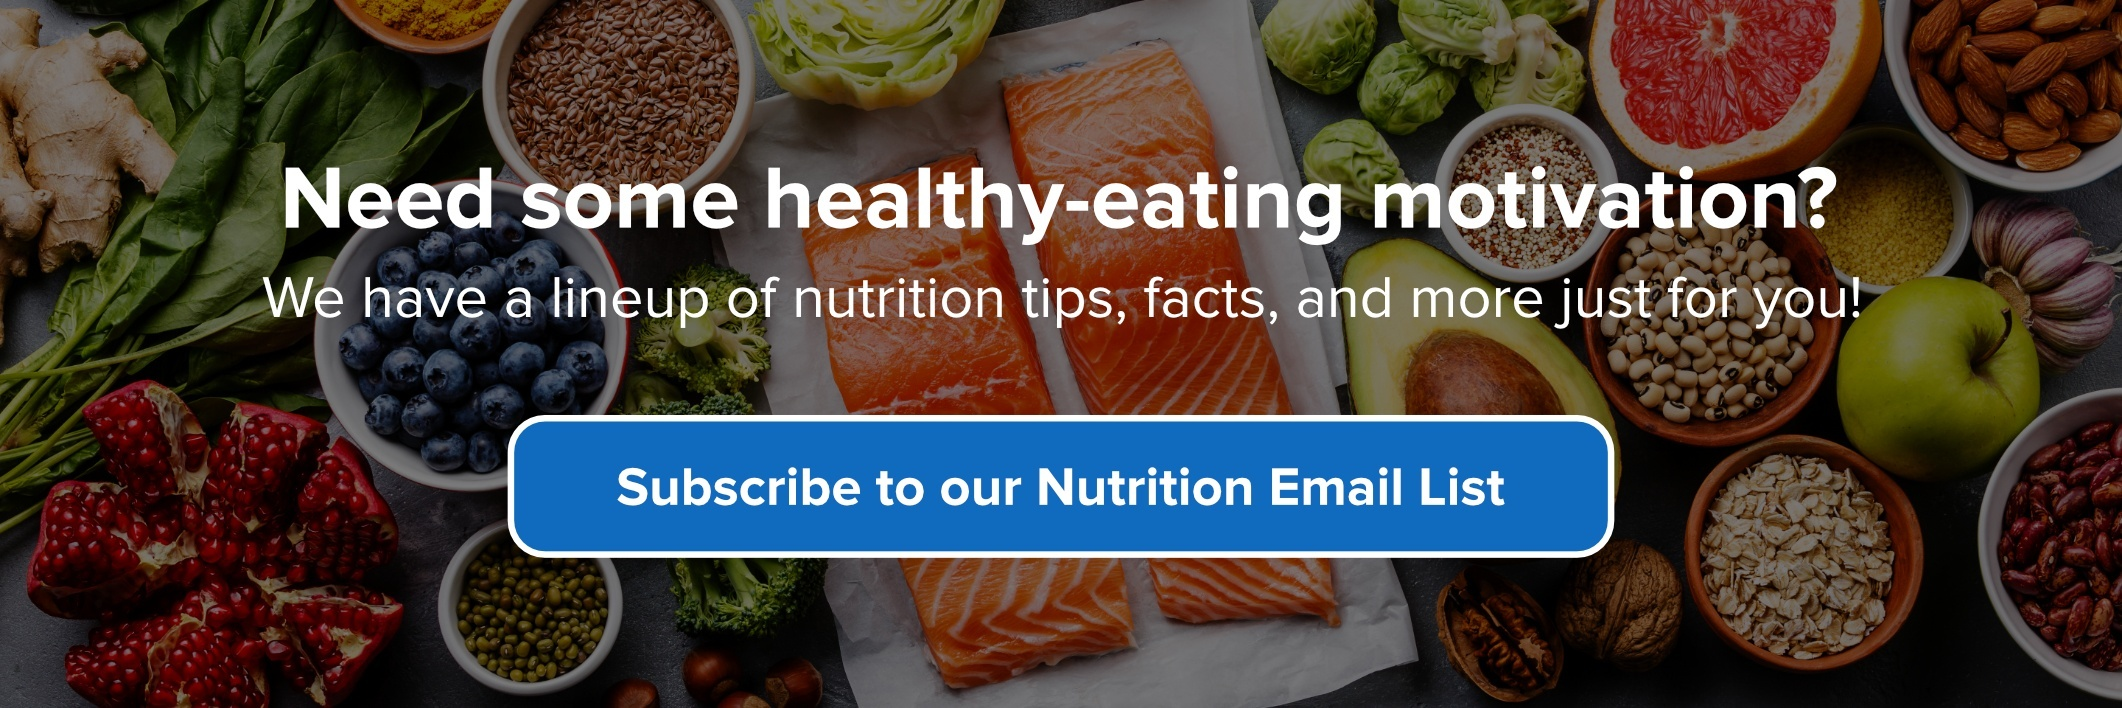 Subscribe to our Nutrition Email List!